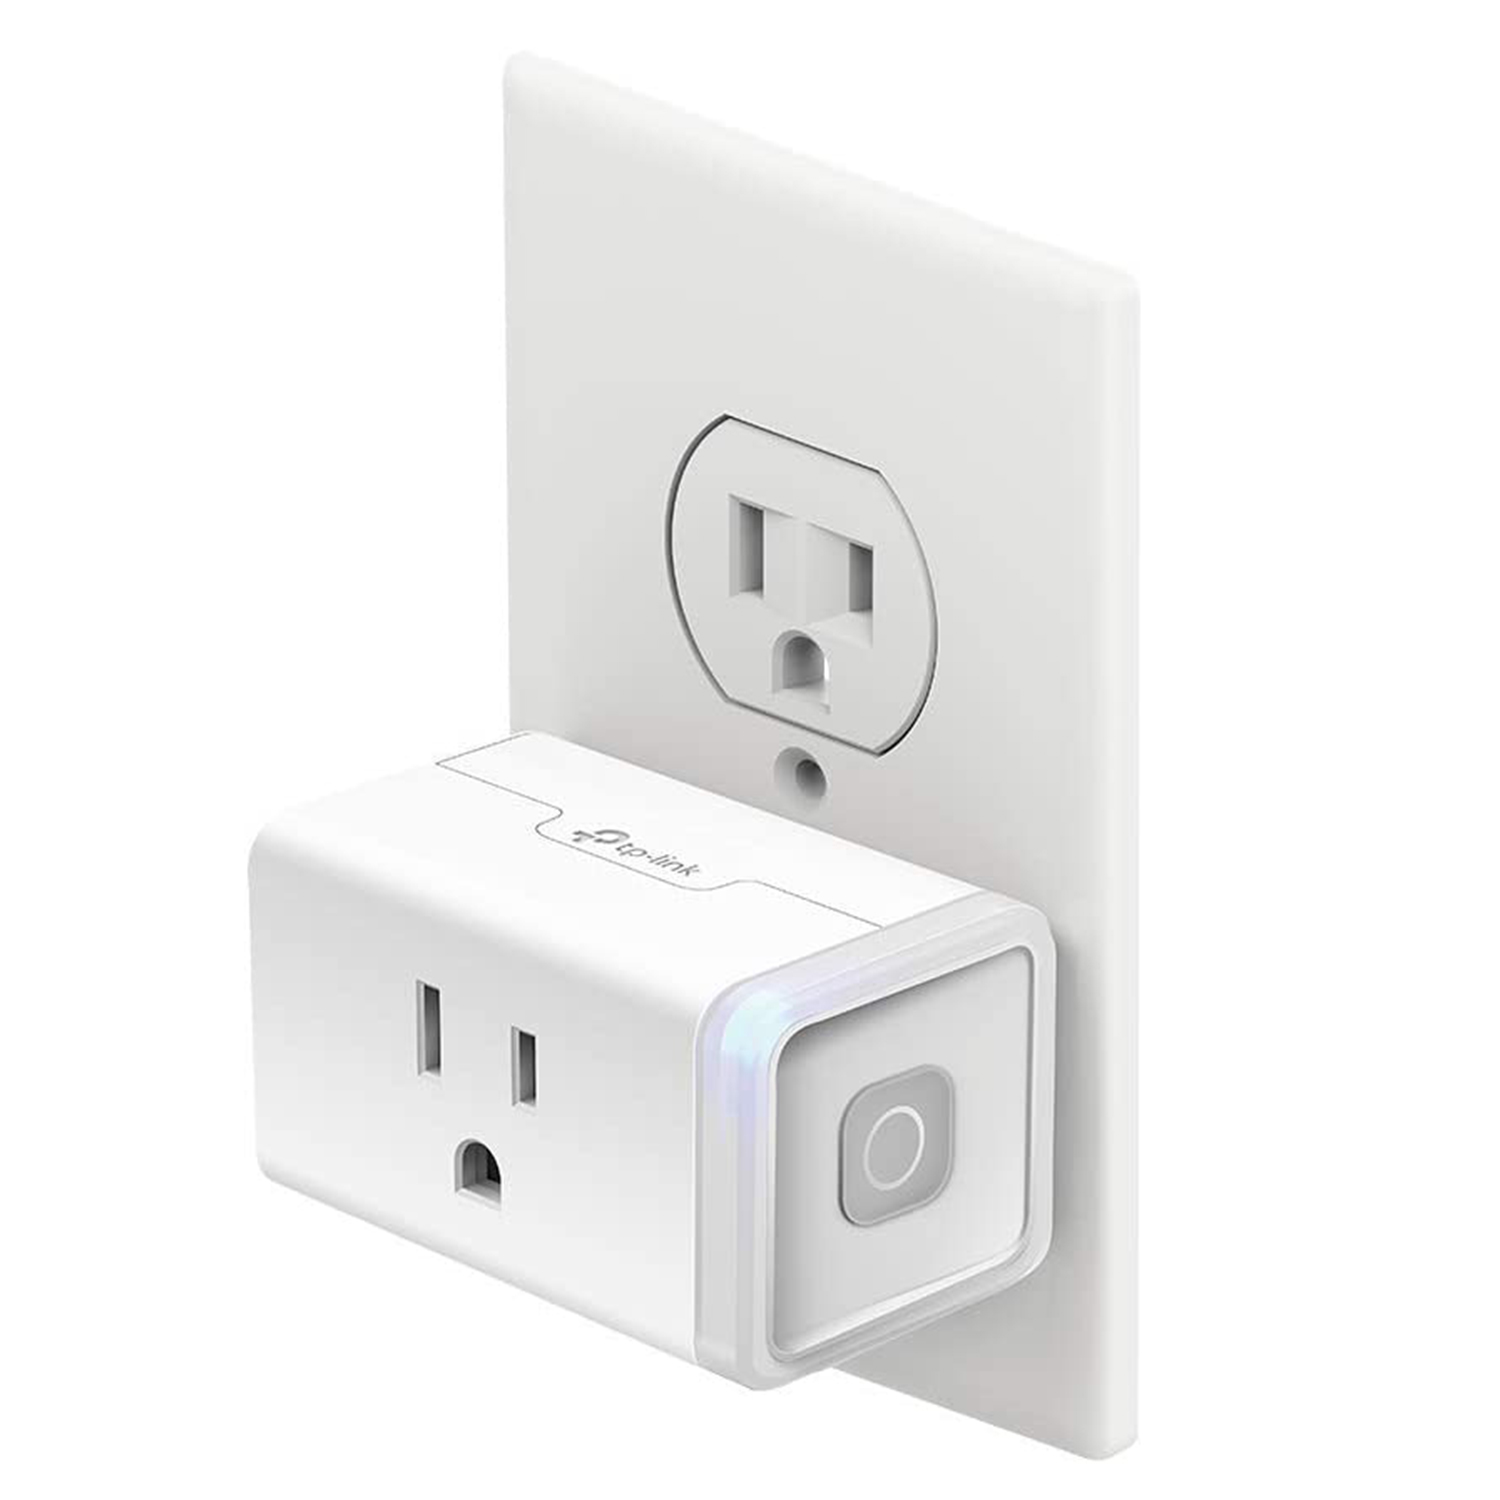 Kasa Smart Plug by TP-Link, Smart Home Wi-Fi Outlet Works with Alexa